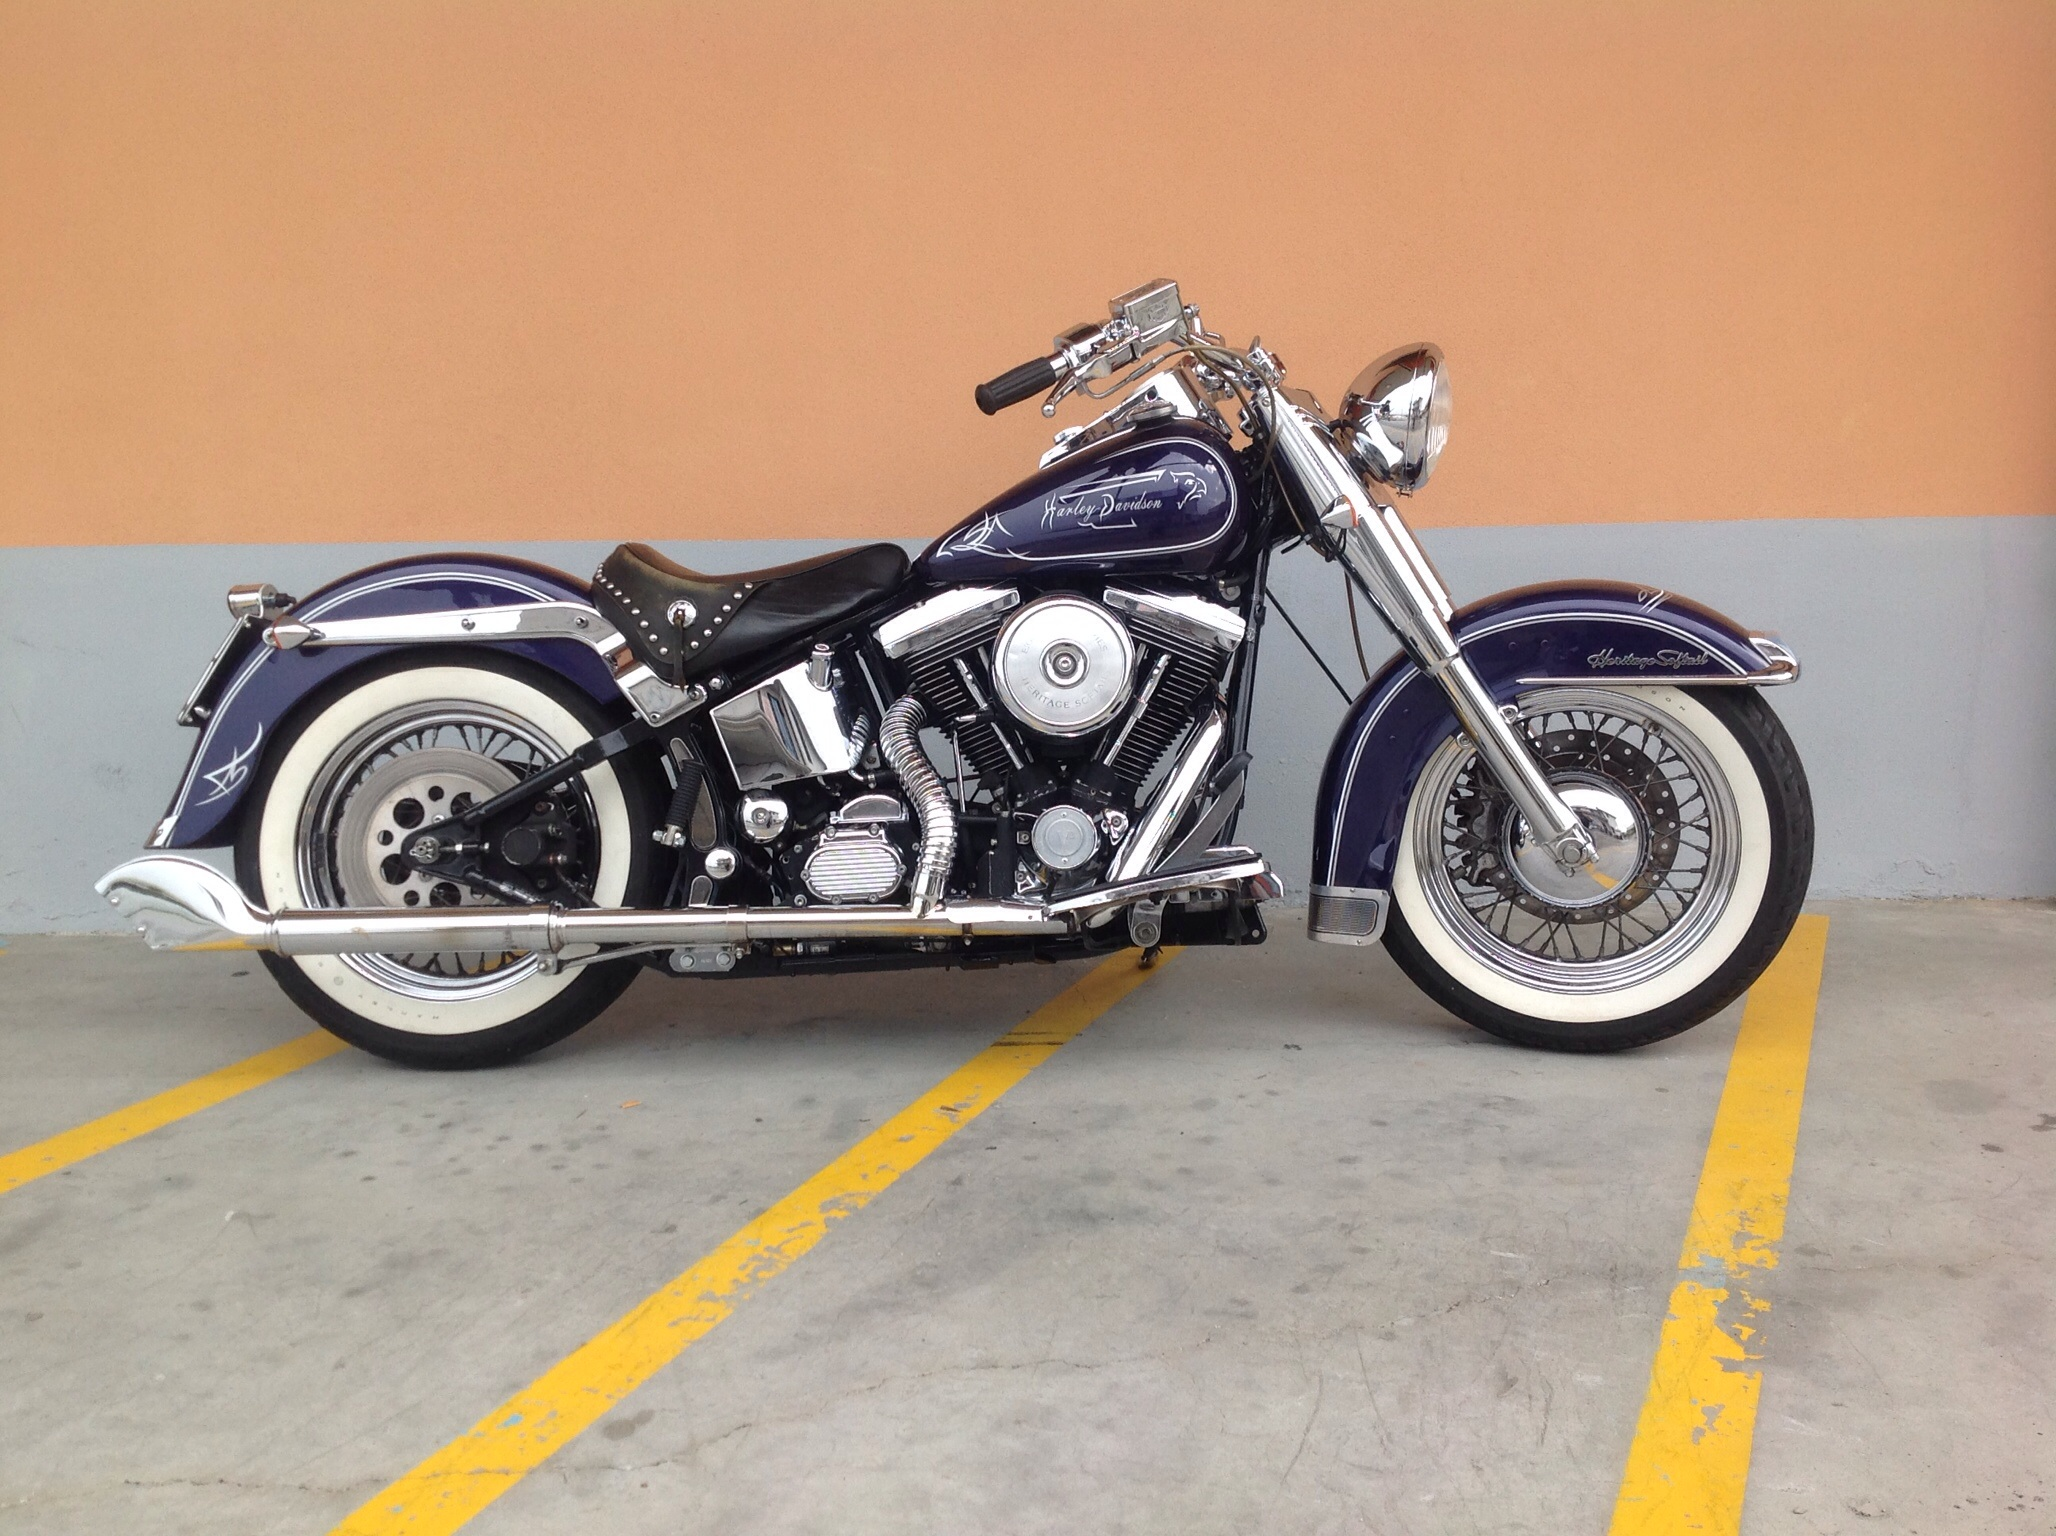 Harley-Davidson 1340 Heritage Softail Classic #4